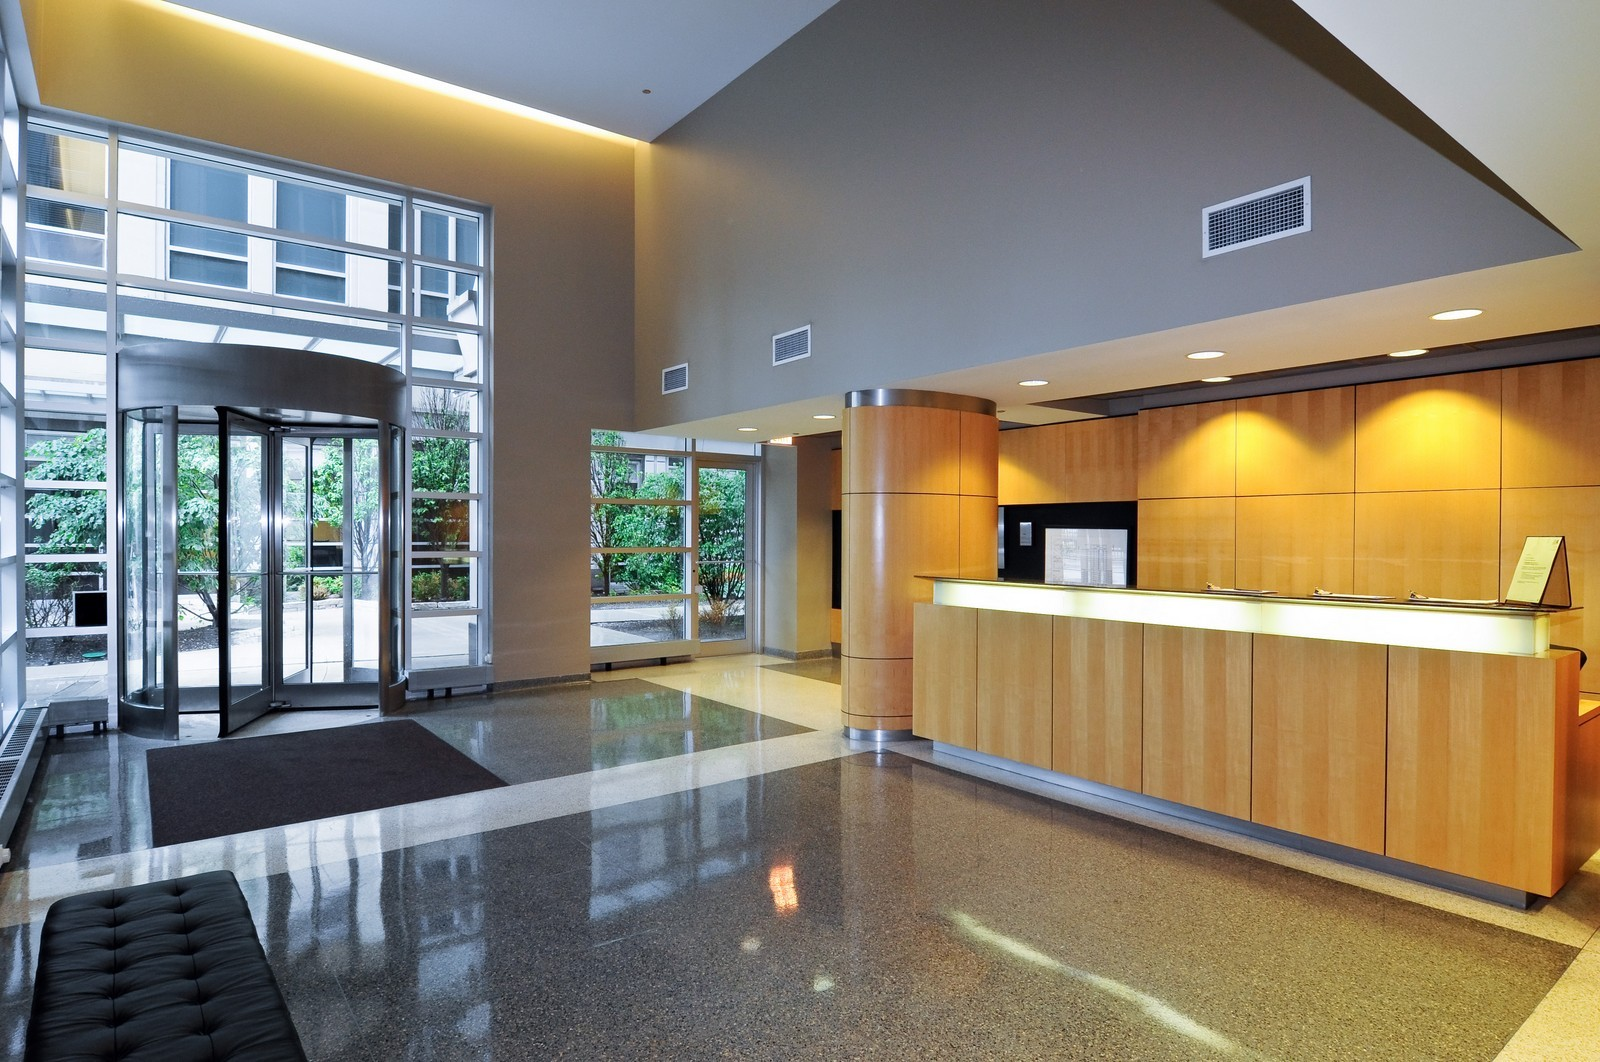 Real Estate Photography - 720 N Larrabee, Apt 1013, Chicago, IL, 60654 - Lobby